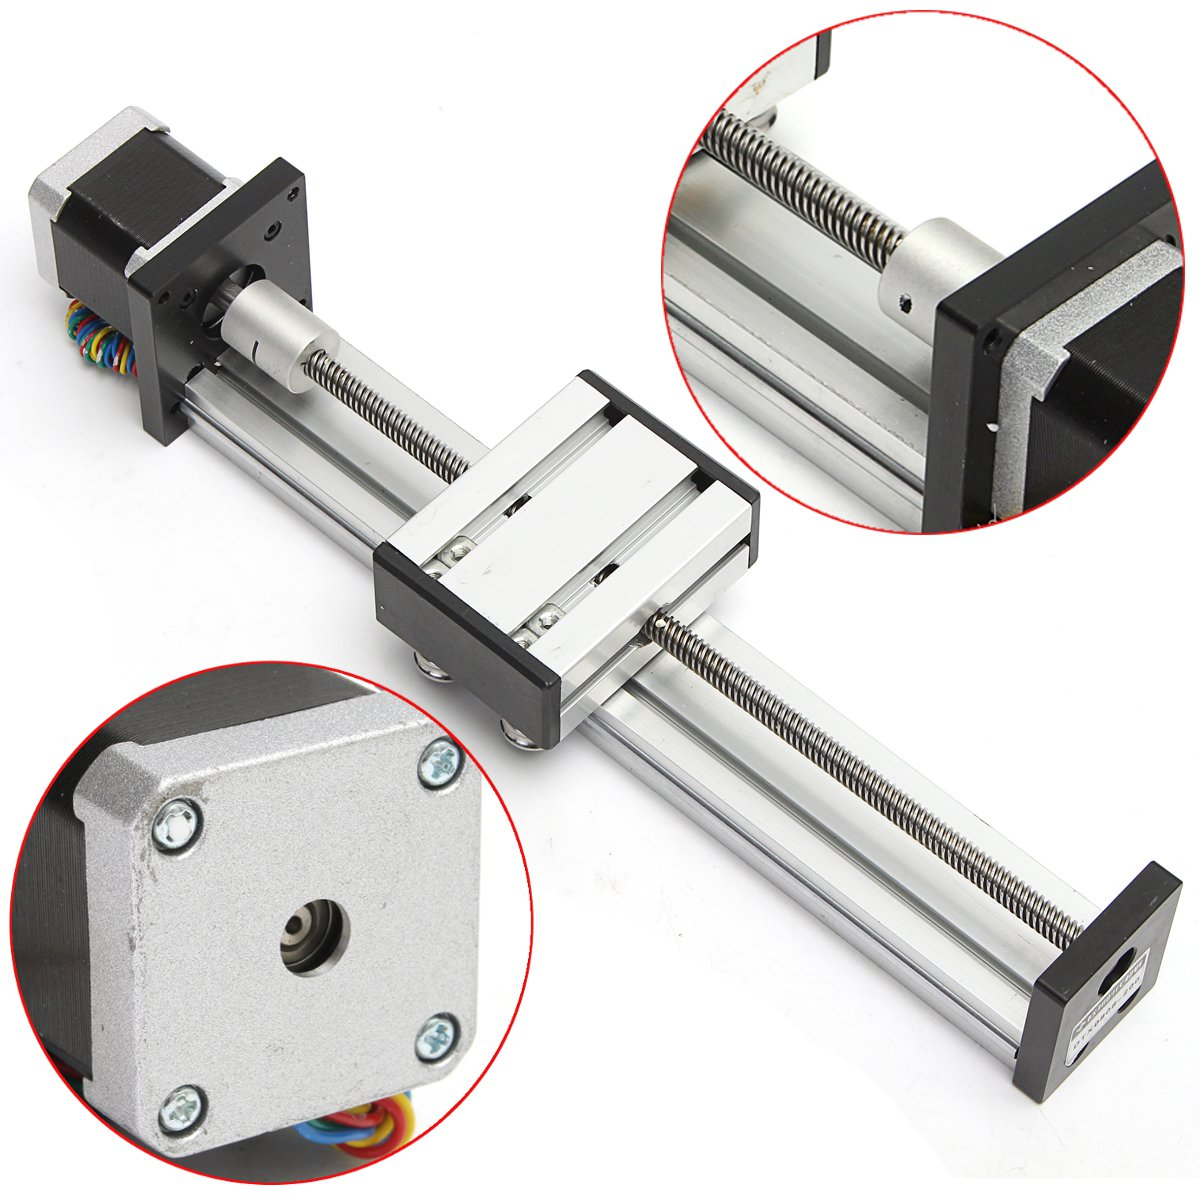 NEW 200mm Slide Stroke CNC Linear Motion Lead Screw Slide Stage Stroke 42 Actuator Stepper Motor For Engraving Machine funssor 50mm 150mm slide stroke cnc z axis slide linear motion nema17 stepper motor for reprap engraving machine